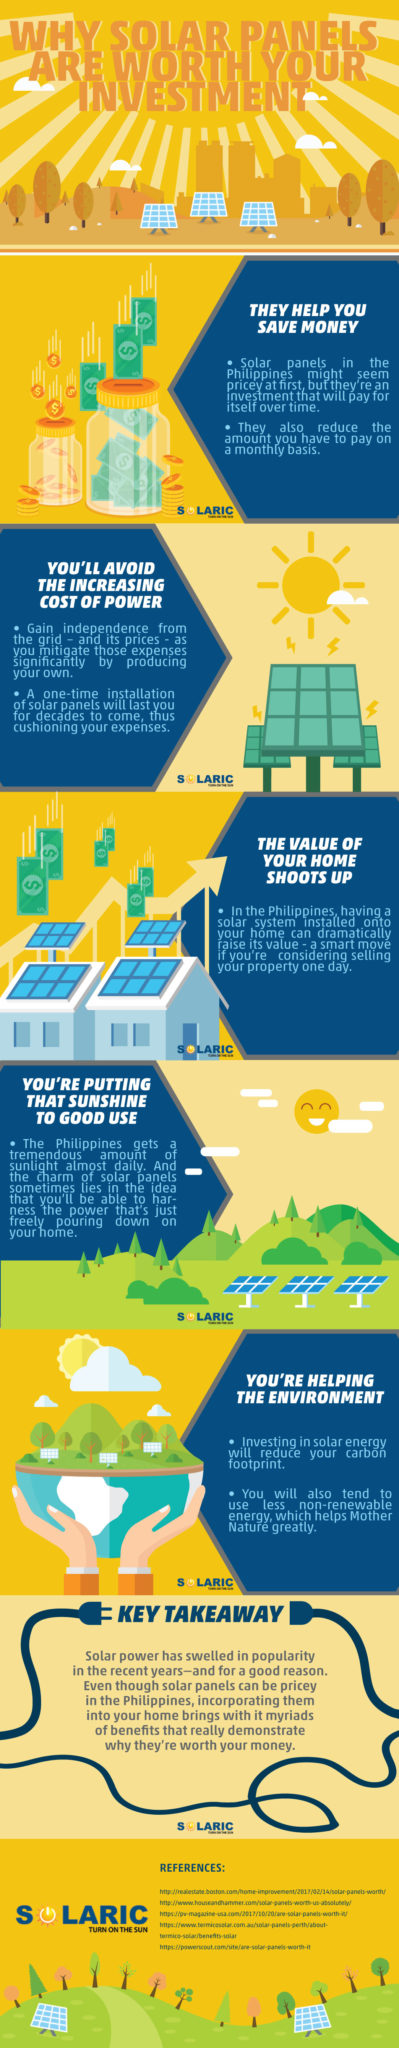 WHY-SOLAR-PANELS-ARE-WORTH-YOUR-INVESTMENT_edited